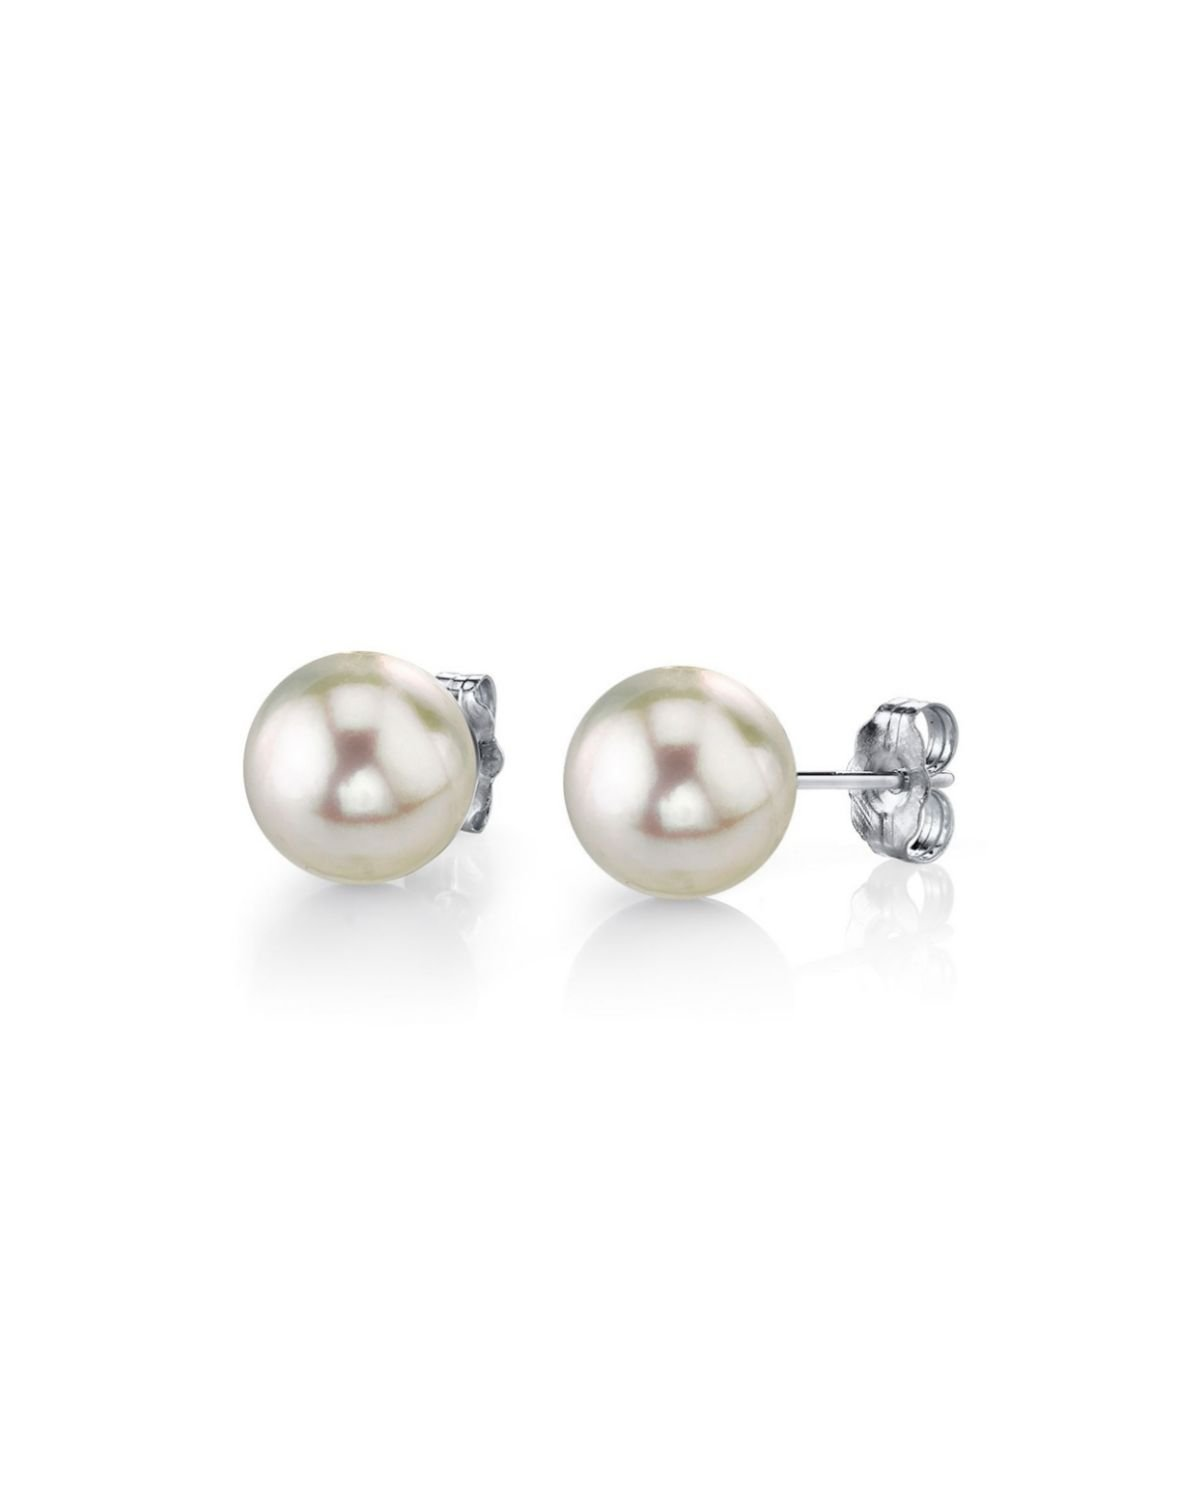 THE PEARL SOURCE 14K Gold 4.5-5mm Baby Sized AAA Quality Round White Cultured Akoya Pearl Stud Earrings for Women by The Pearl Source (Image #1)